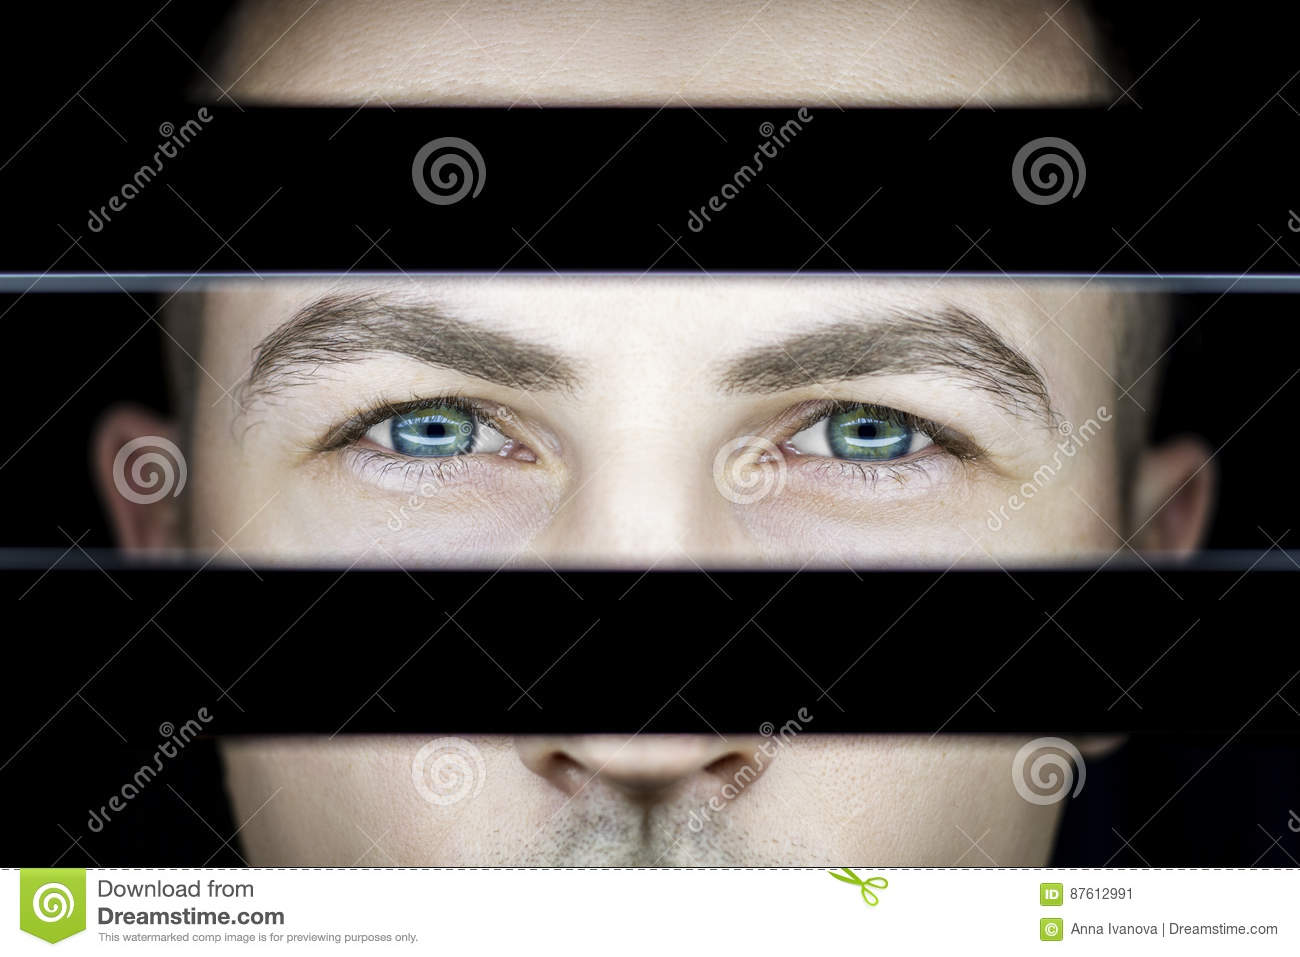 Download Portrait Of A Man In Dark In Light Of Lamps. Atmospheric Art Photo Of A Guy With Green Eyes. The Man`s Face On The Other Side Stock Image - Image of contrast, black: 87612991